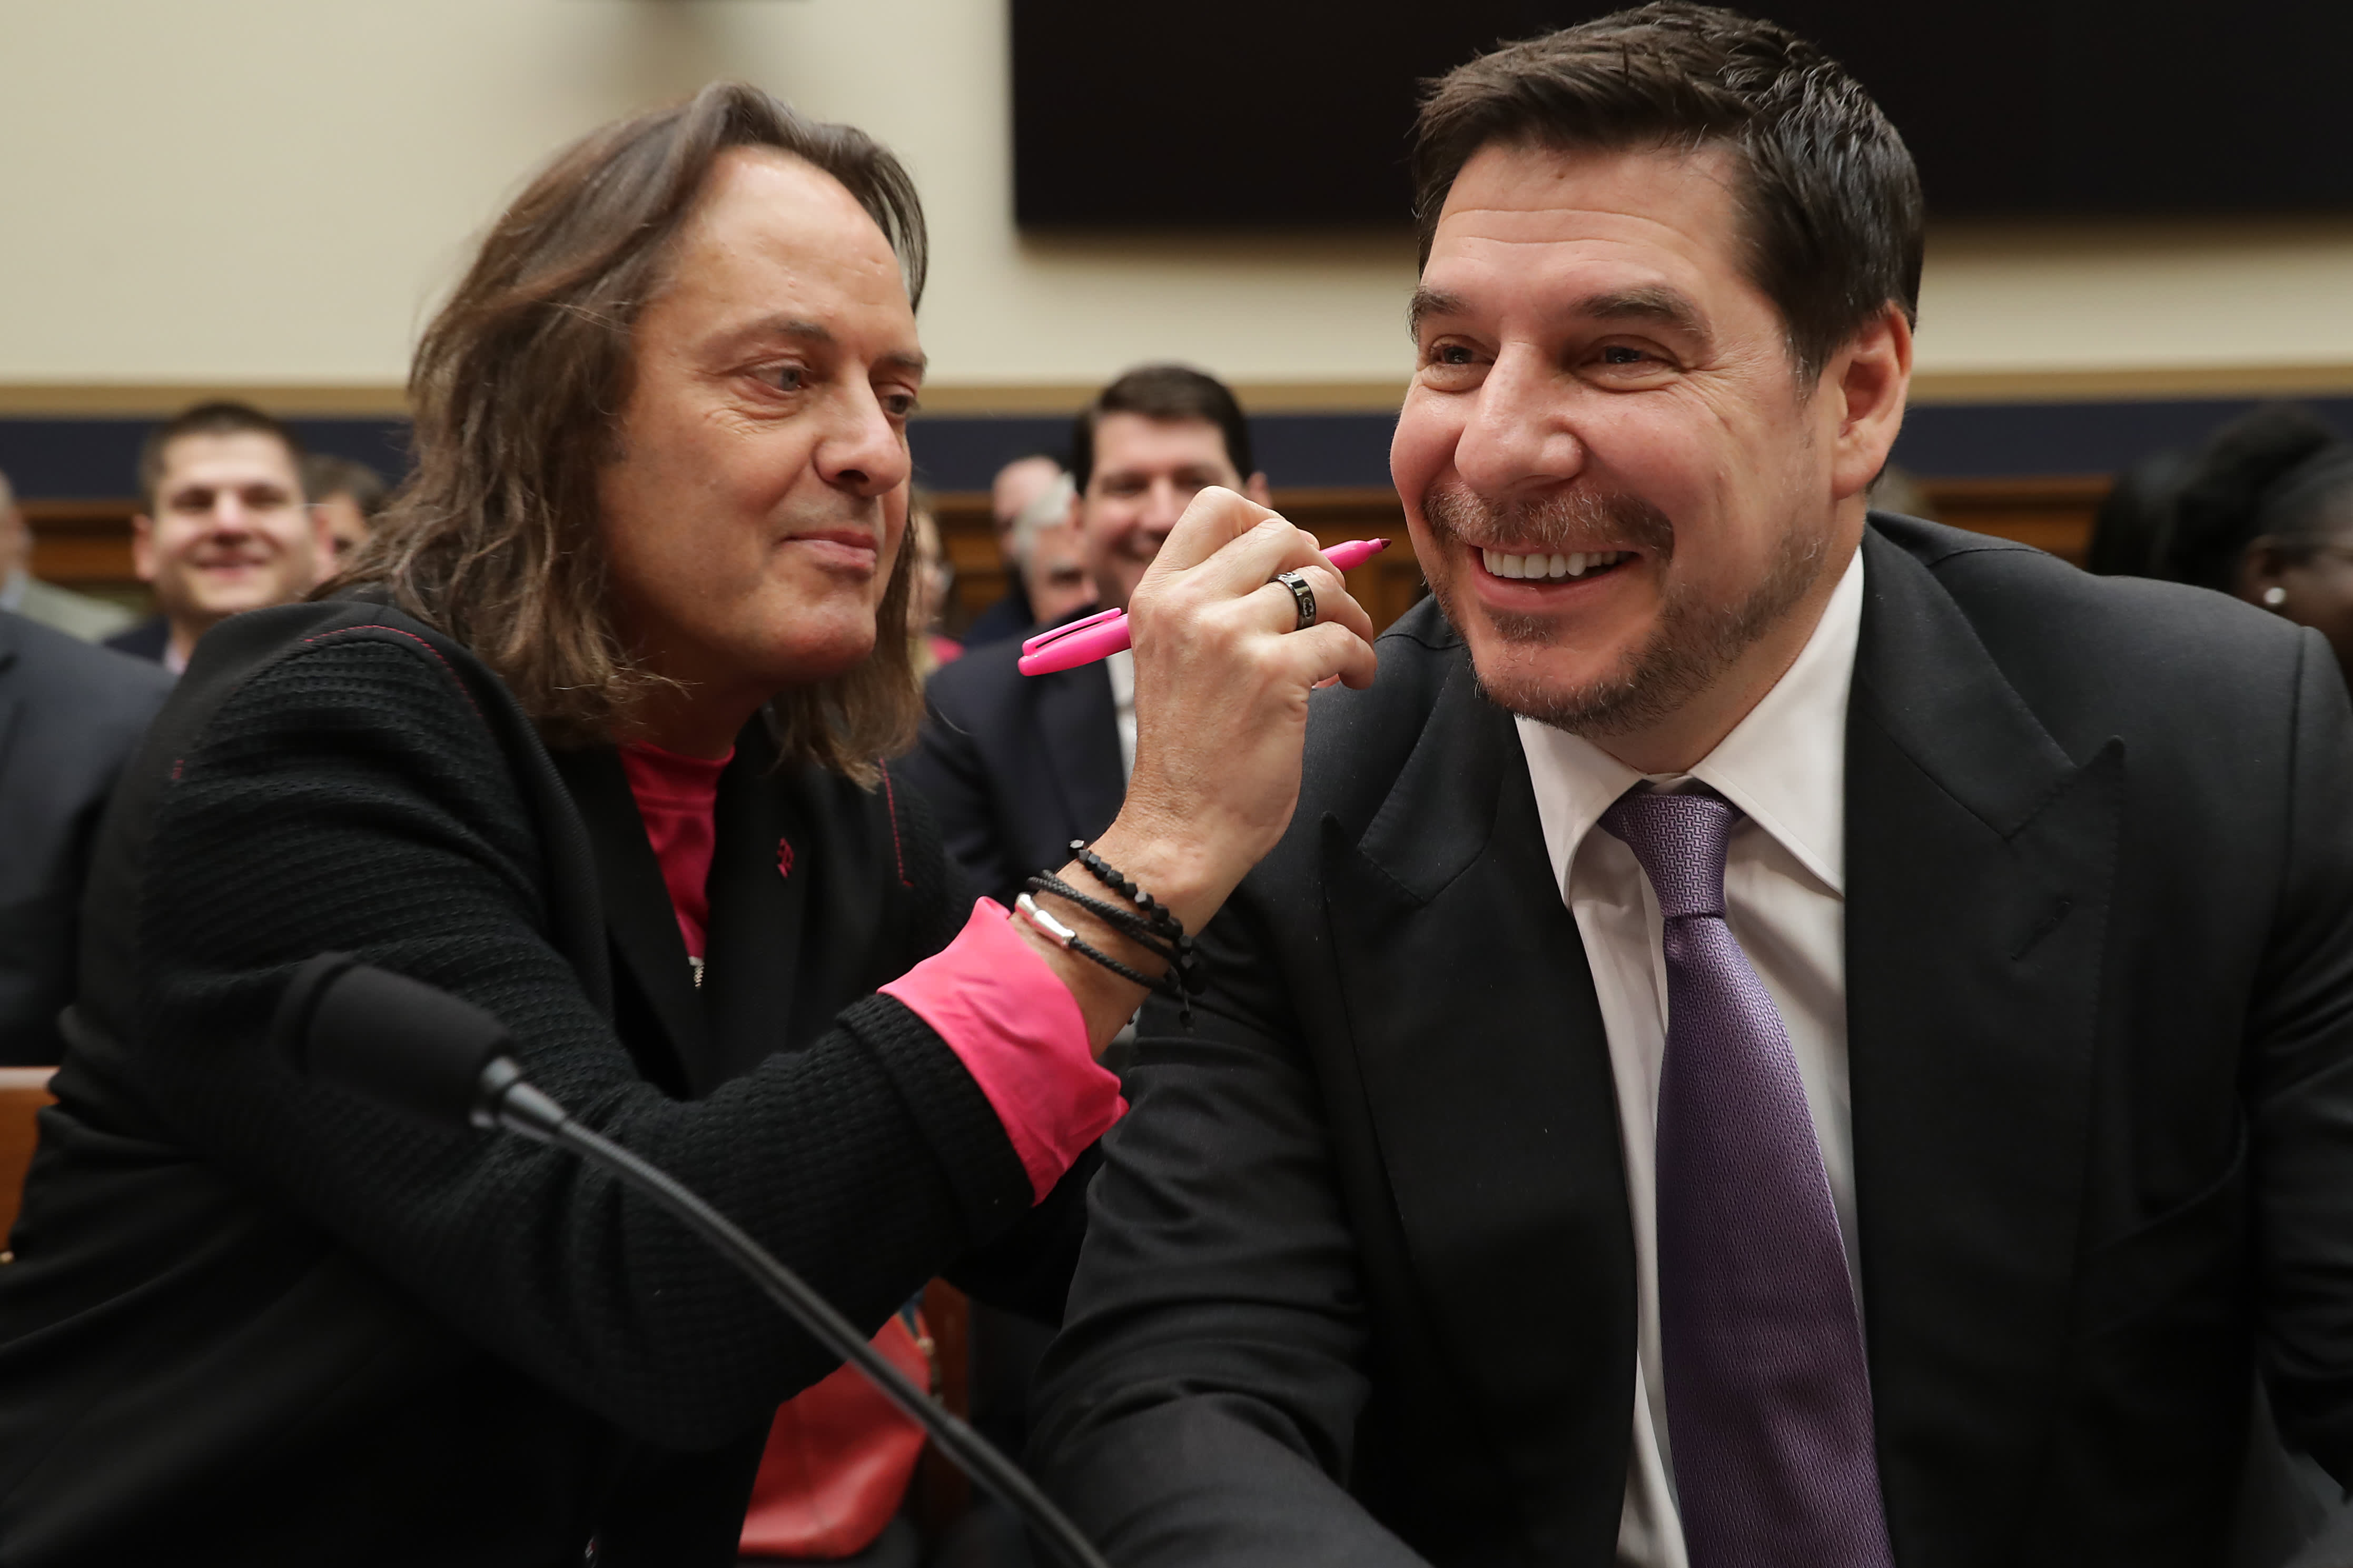 WeWork's chairman once called John Legere a 'con artist' — now they may be running WeWork together